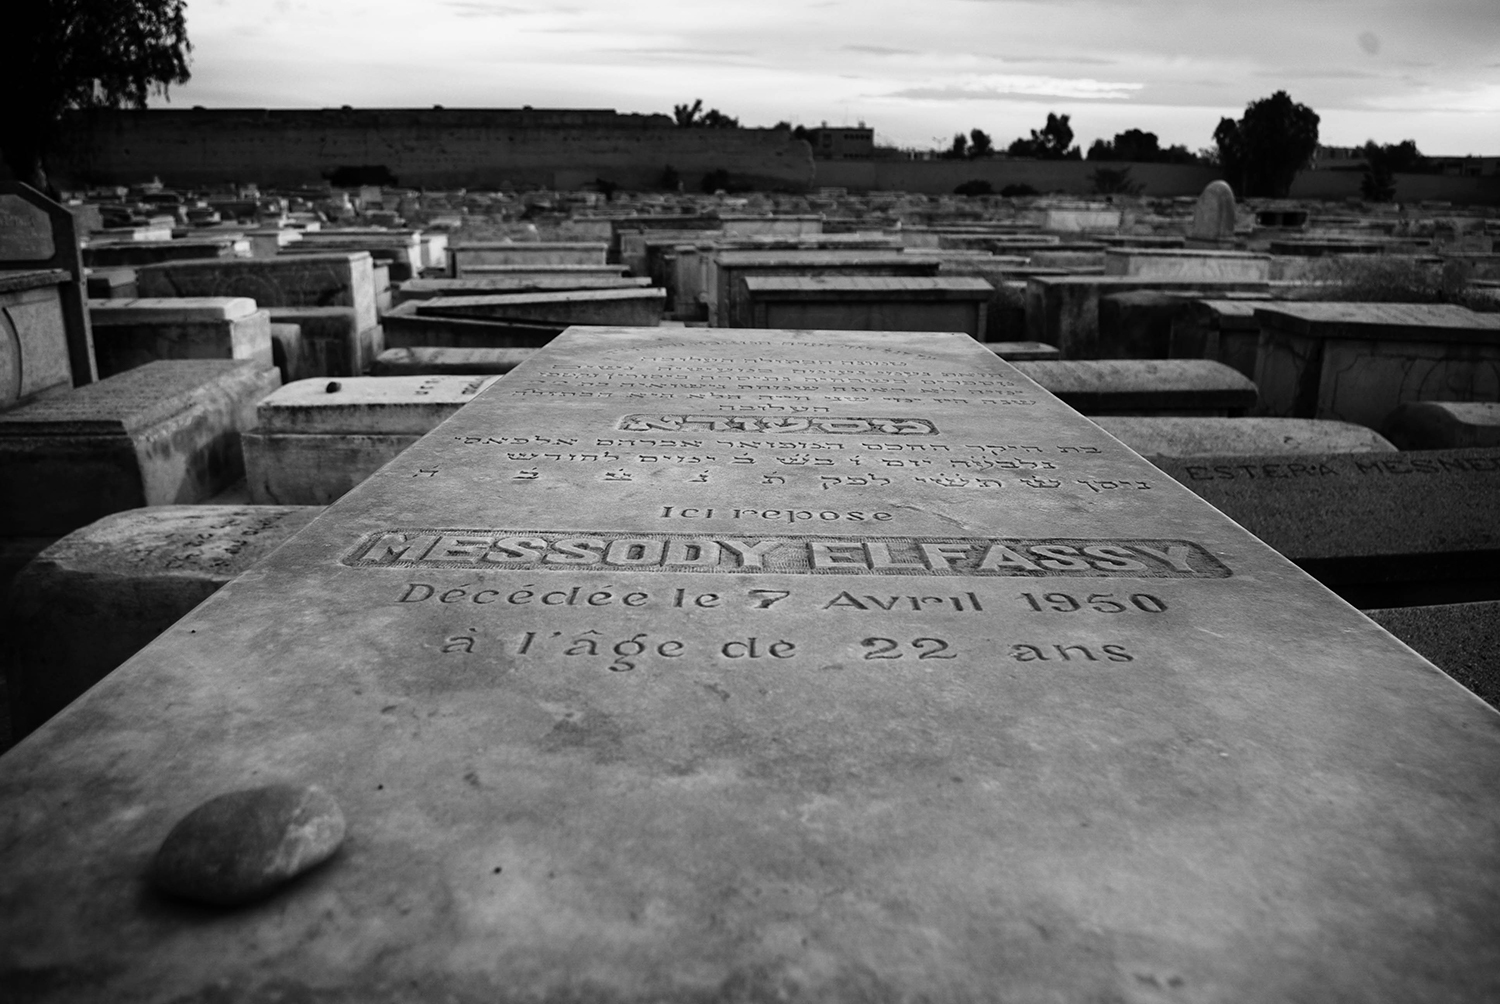 <p>It's a Jewish custom to leave a stone on a tomb as a symbol of mourning and memory. Here, a solitary stone was left on the grave of someone who died too young.<br /></p>